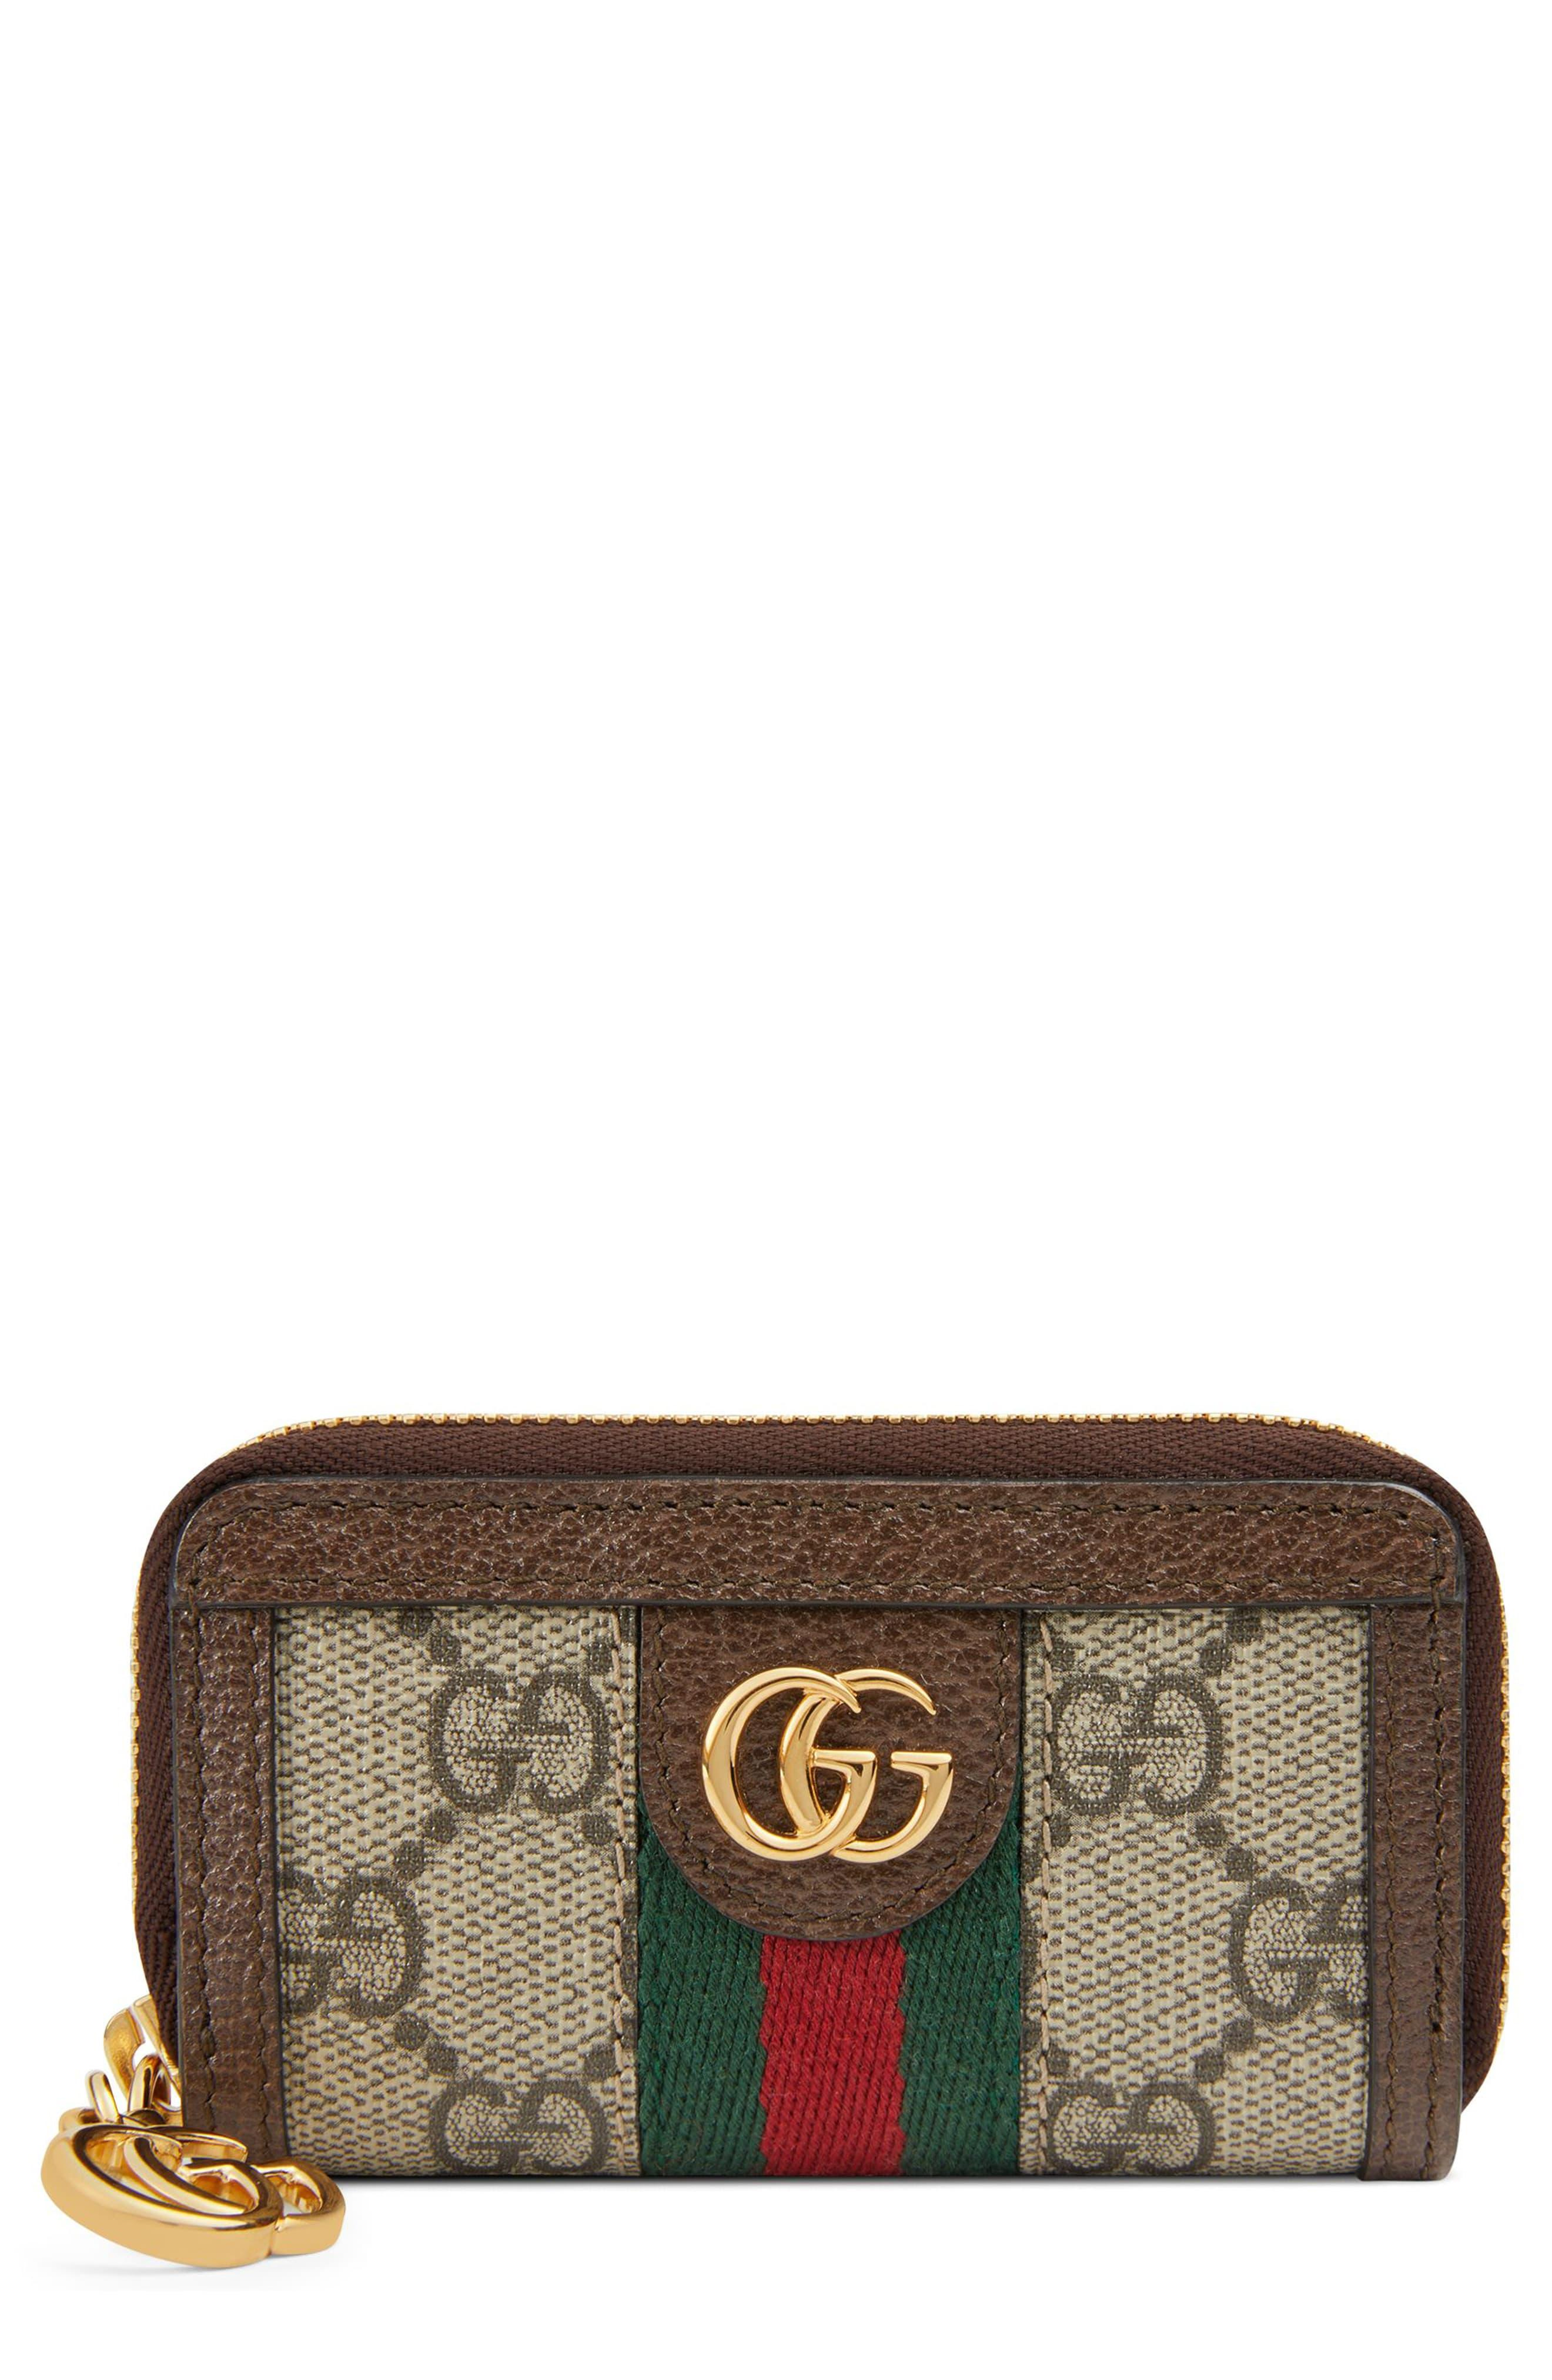 fdf03adfd84776 Gucci Ophidia Gg Supreme Zip-around Key Case in Natural - Lyst